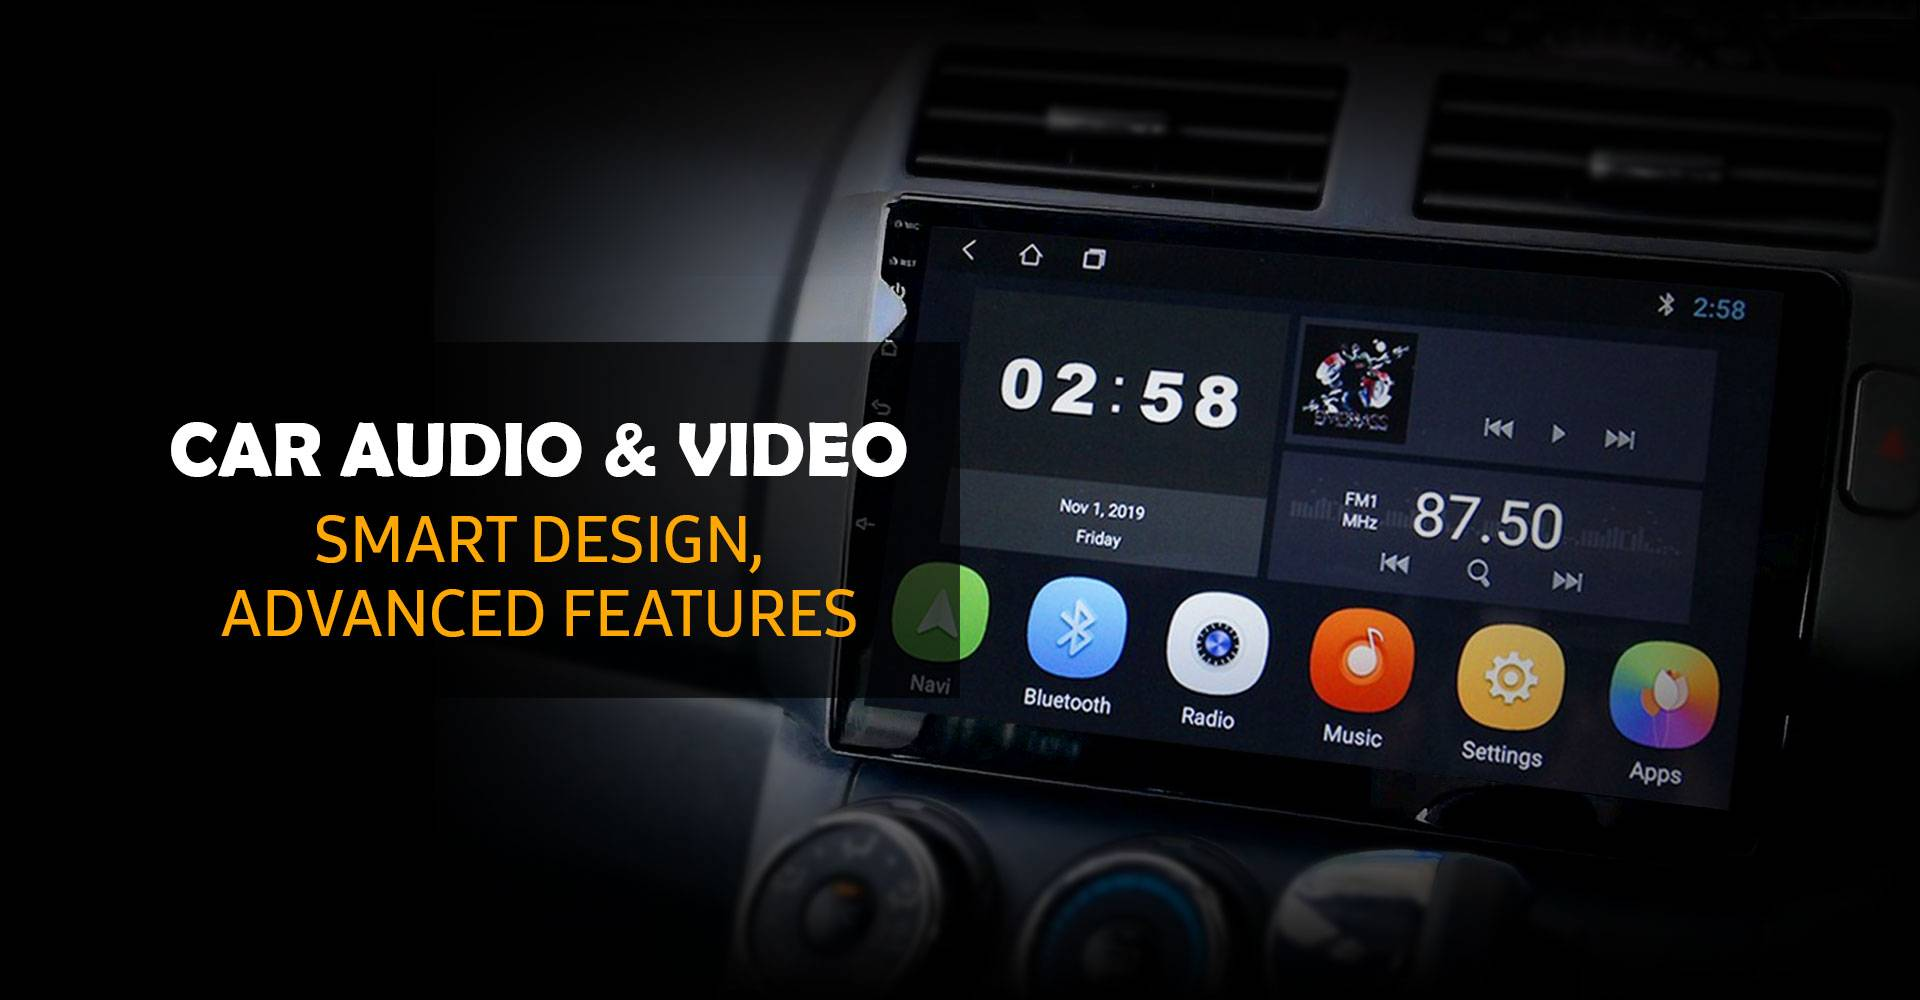 CAR AUDIO & VIDEO SMART DESIGN, ADVANCED FEATURES